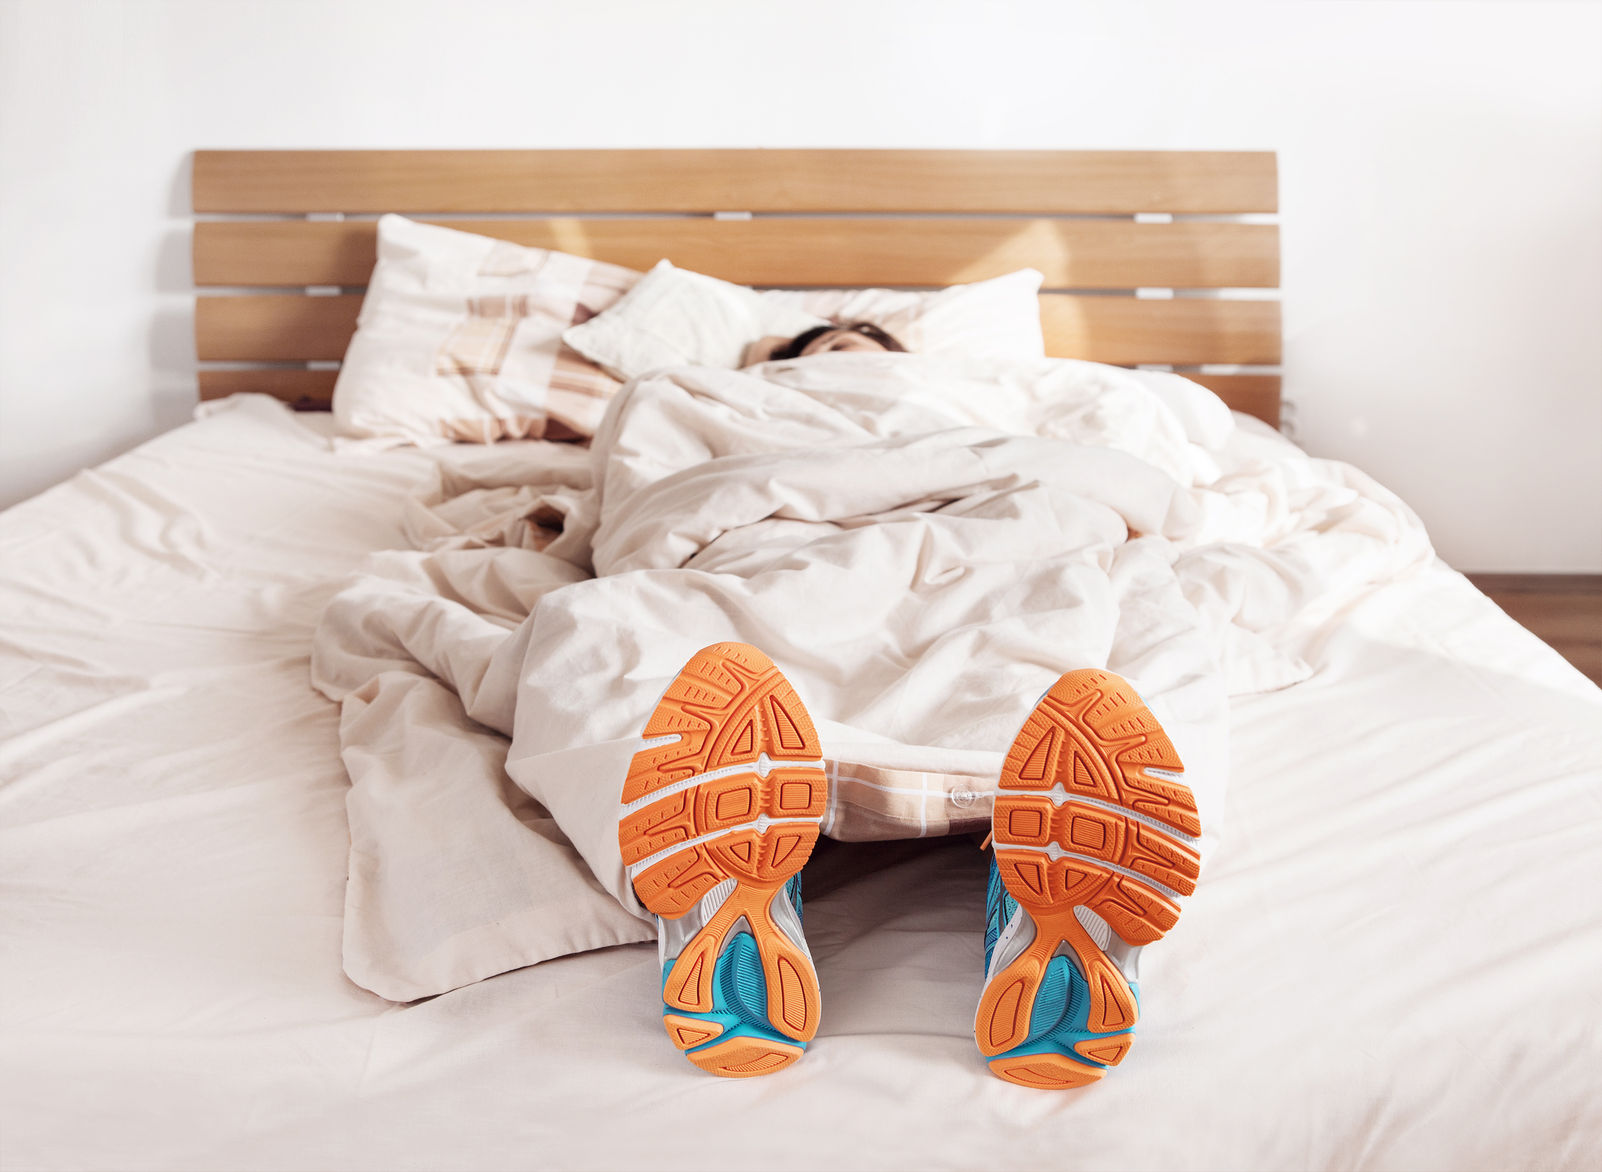 Runner Sleeping with Running Shoes Image